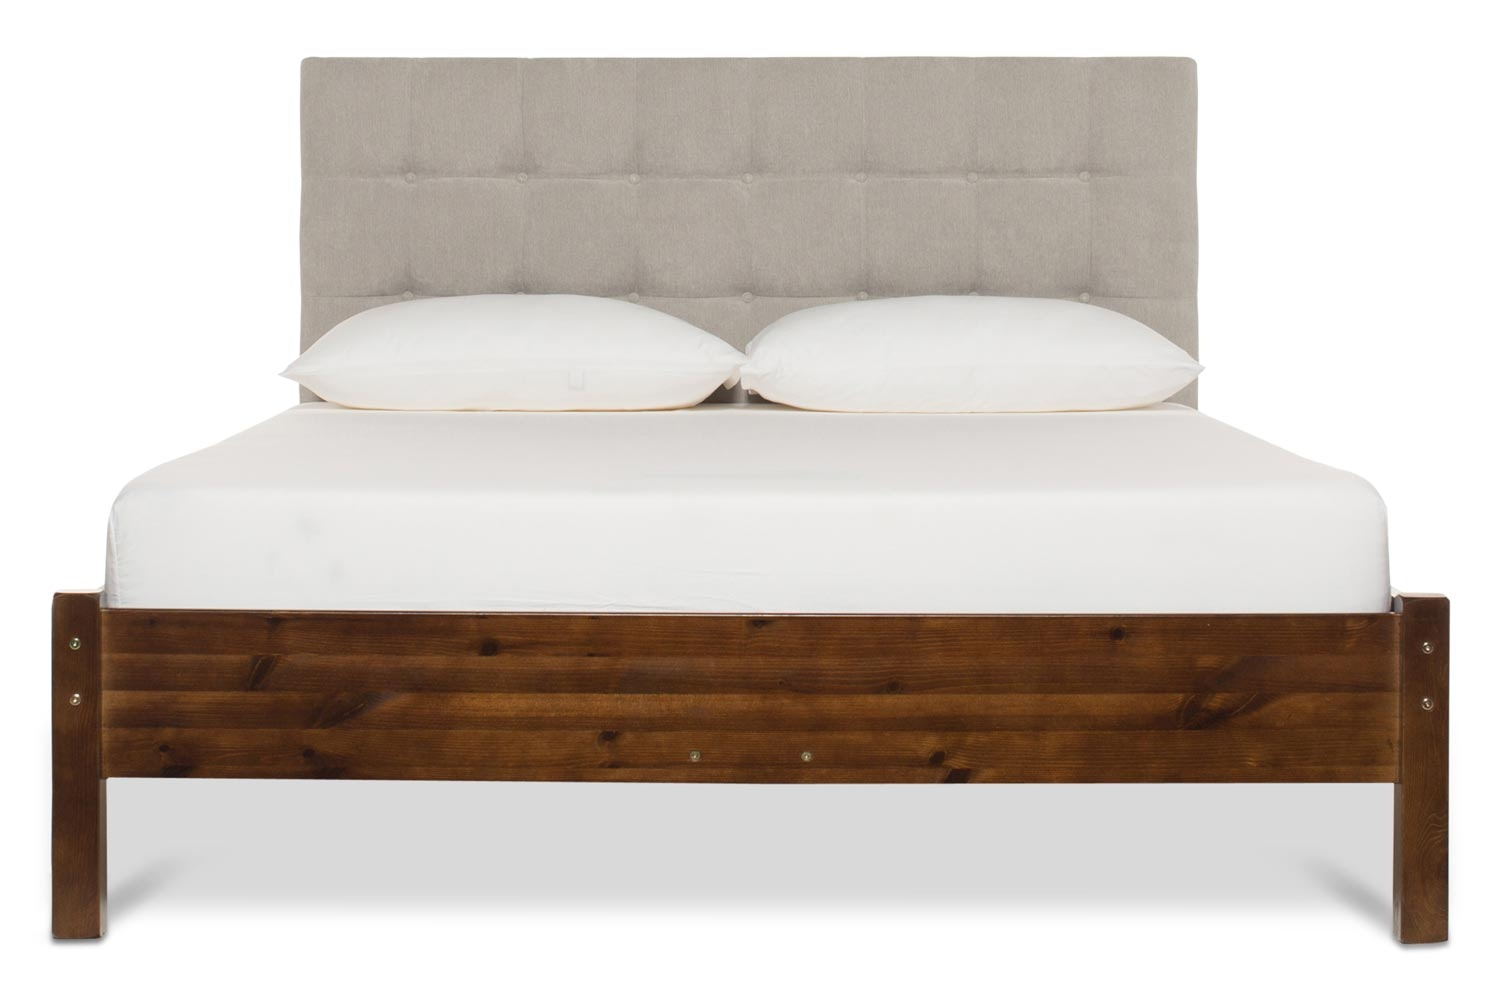 Emily Loft Walnut Bed Frame | 5FT | Portland Headboard Silver